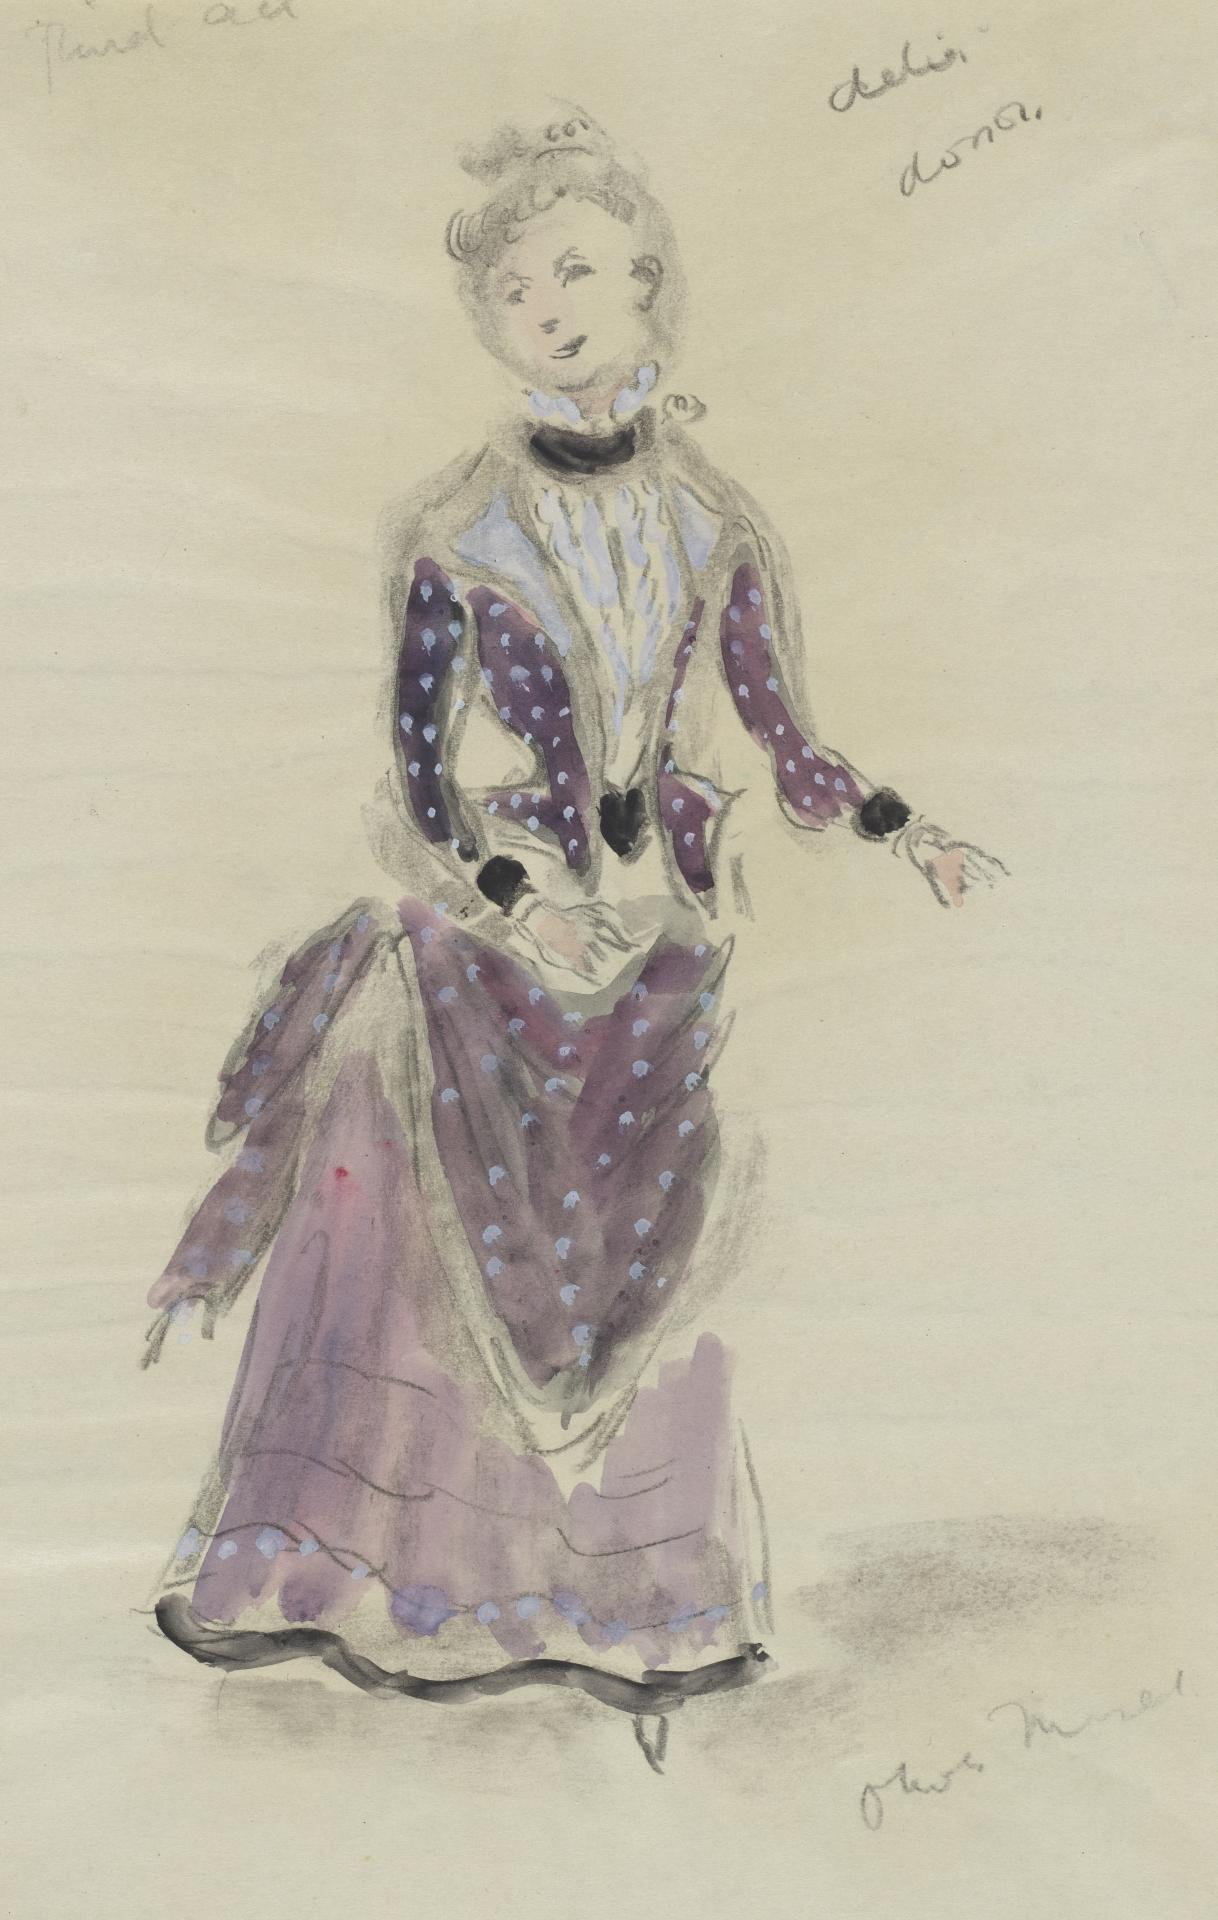 Costume design for the actress Delia Dosson